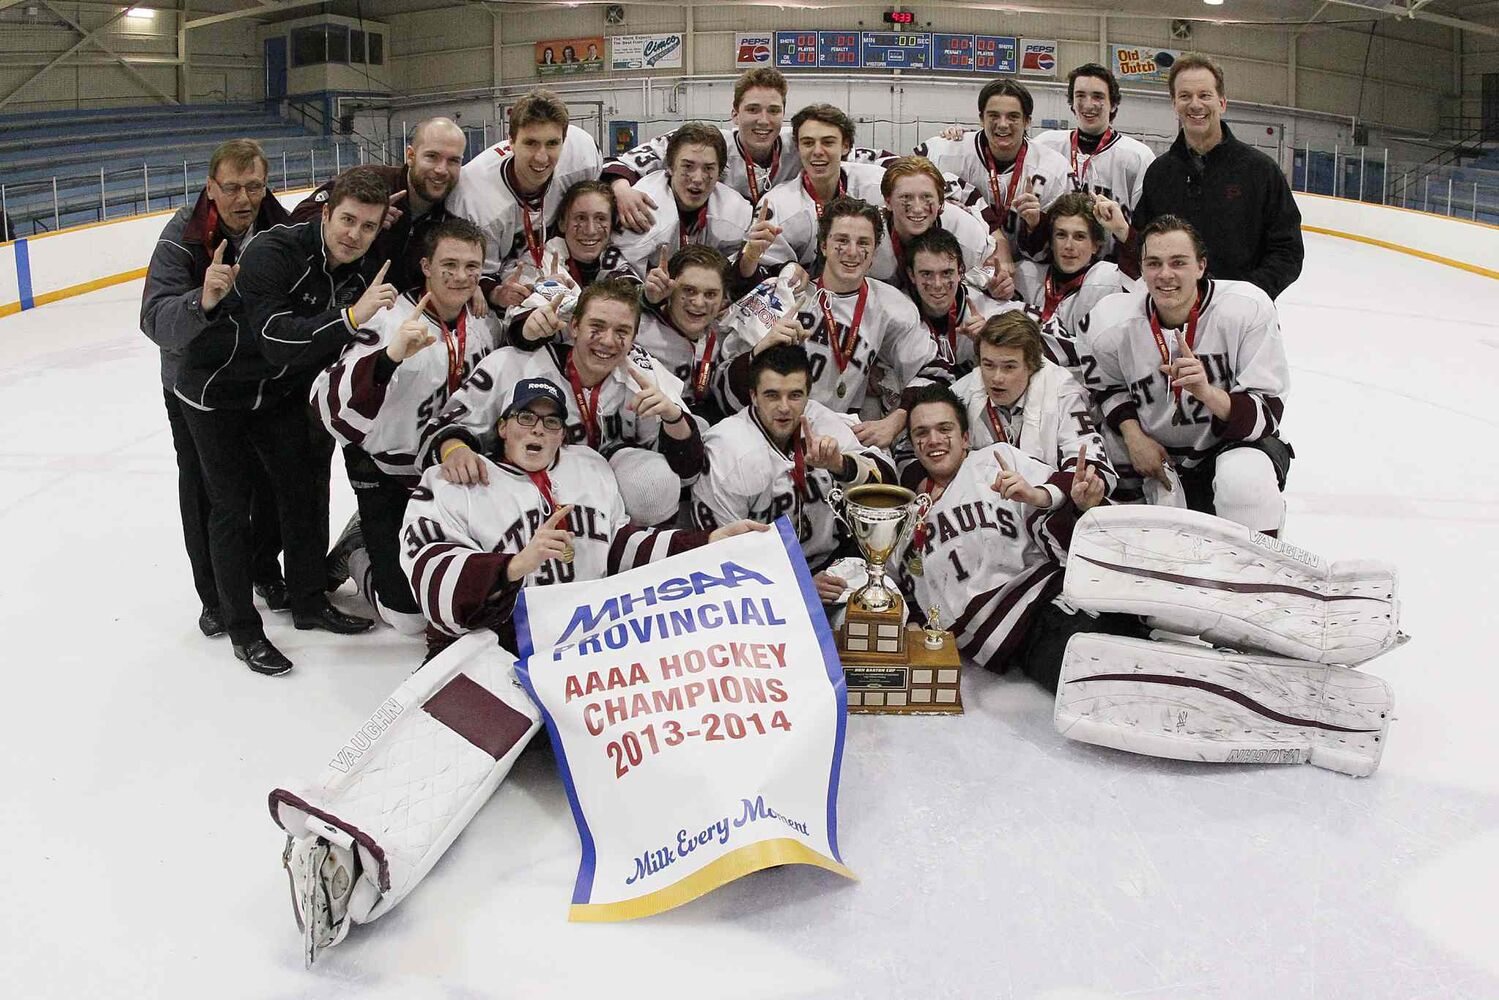 The provincial champion St. Paul's Crusaders hockey team pose for a trophy shot. (JOHN WOODS / WINNIPEG FREE PRESS)